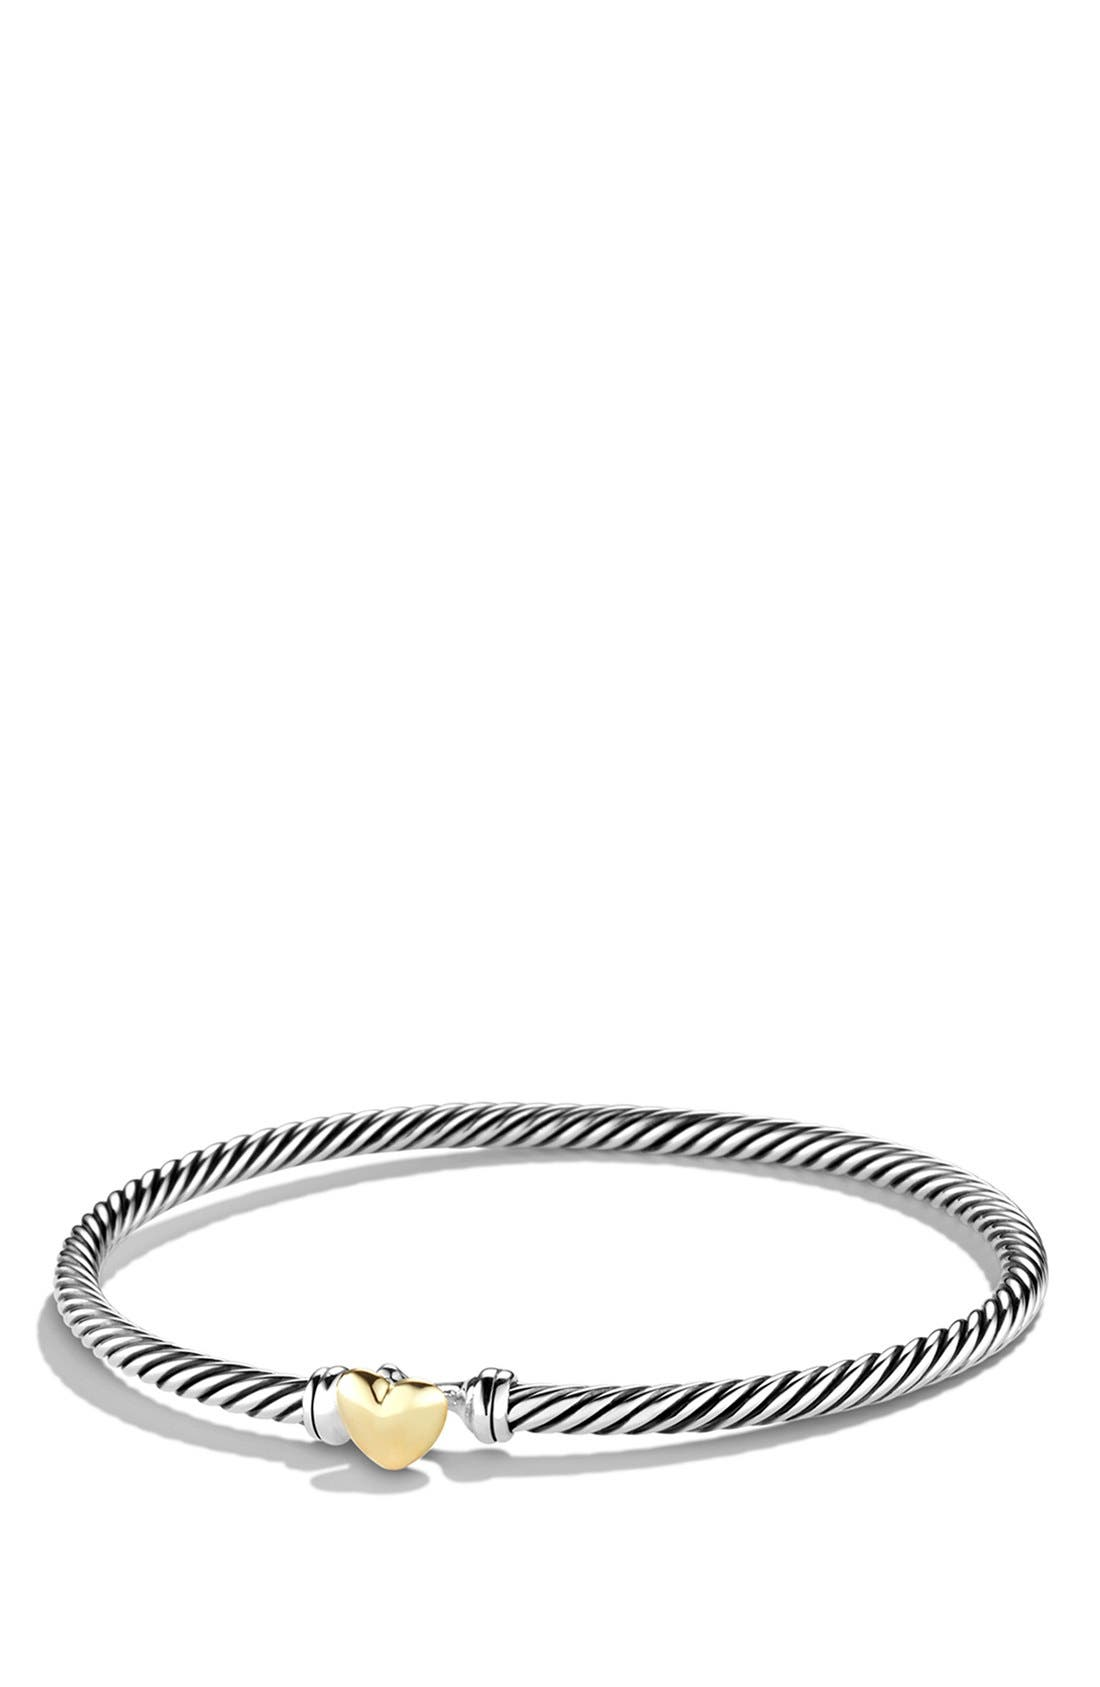 DAVID YURMAN 'Cable Collectibles' Heart Bracelet with Gold